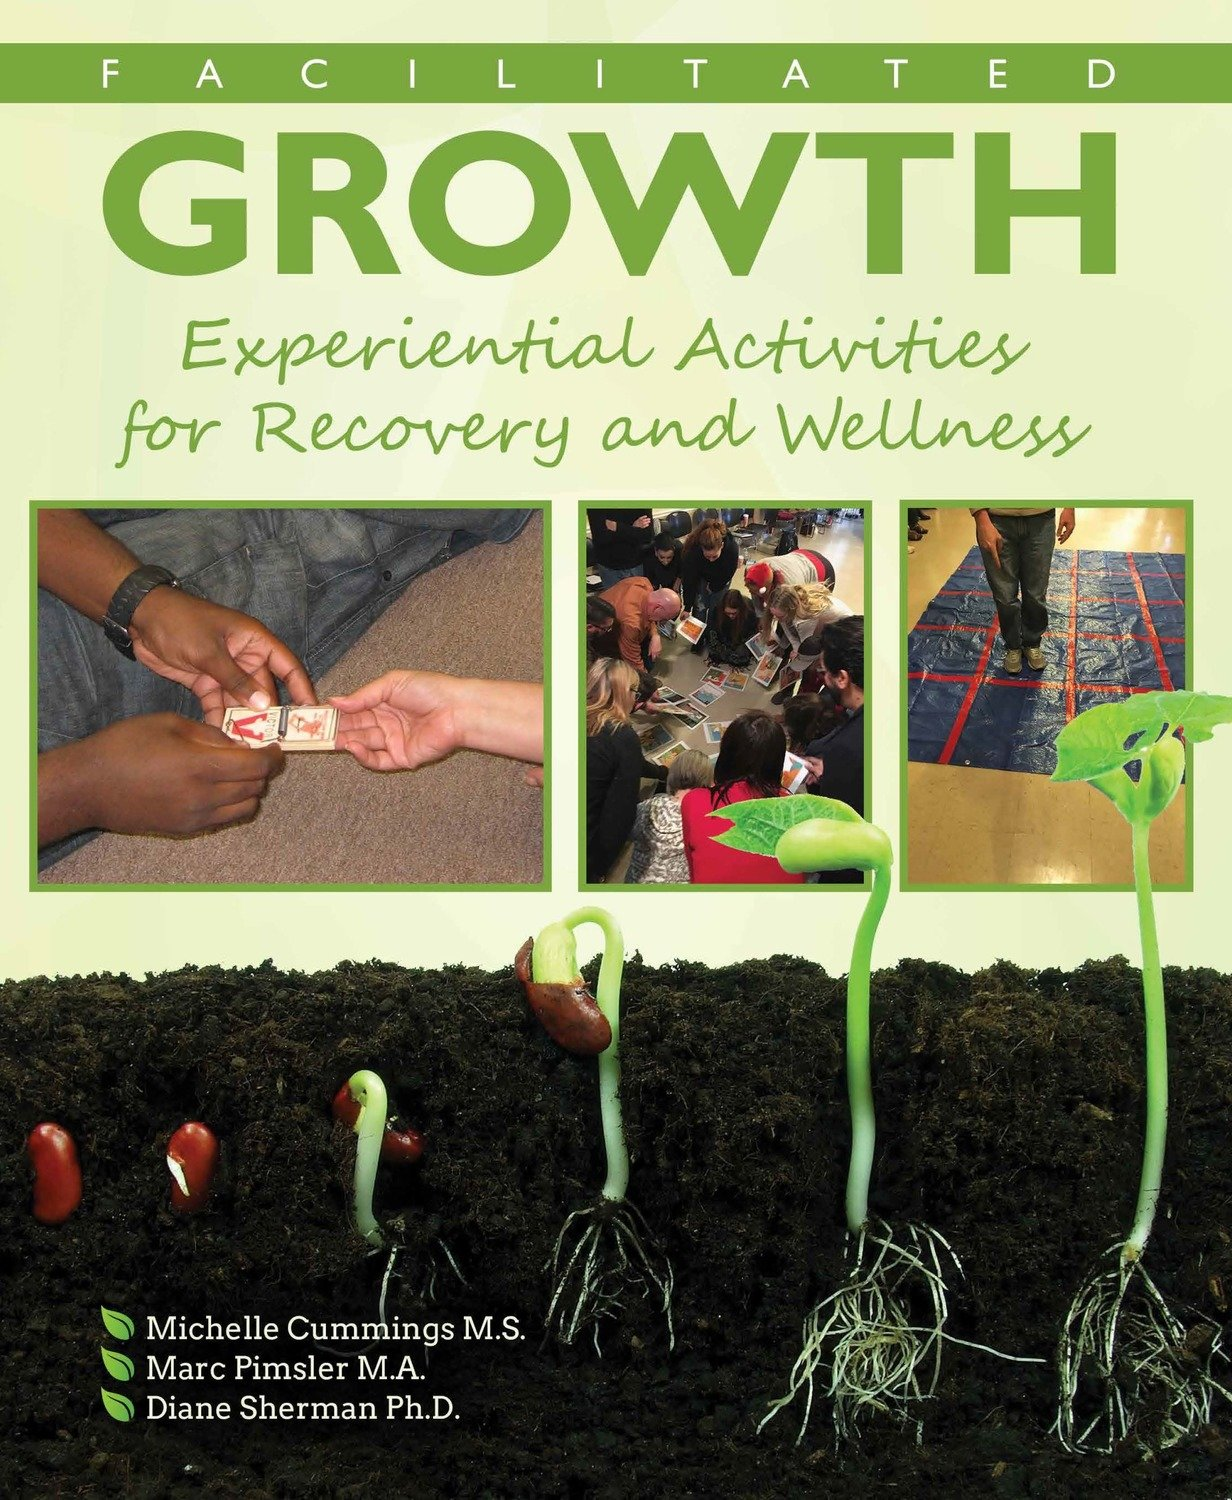 Facilitated Growth: Experiential Activities